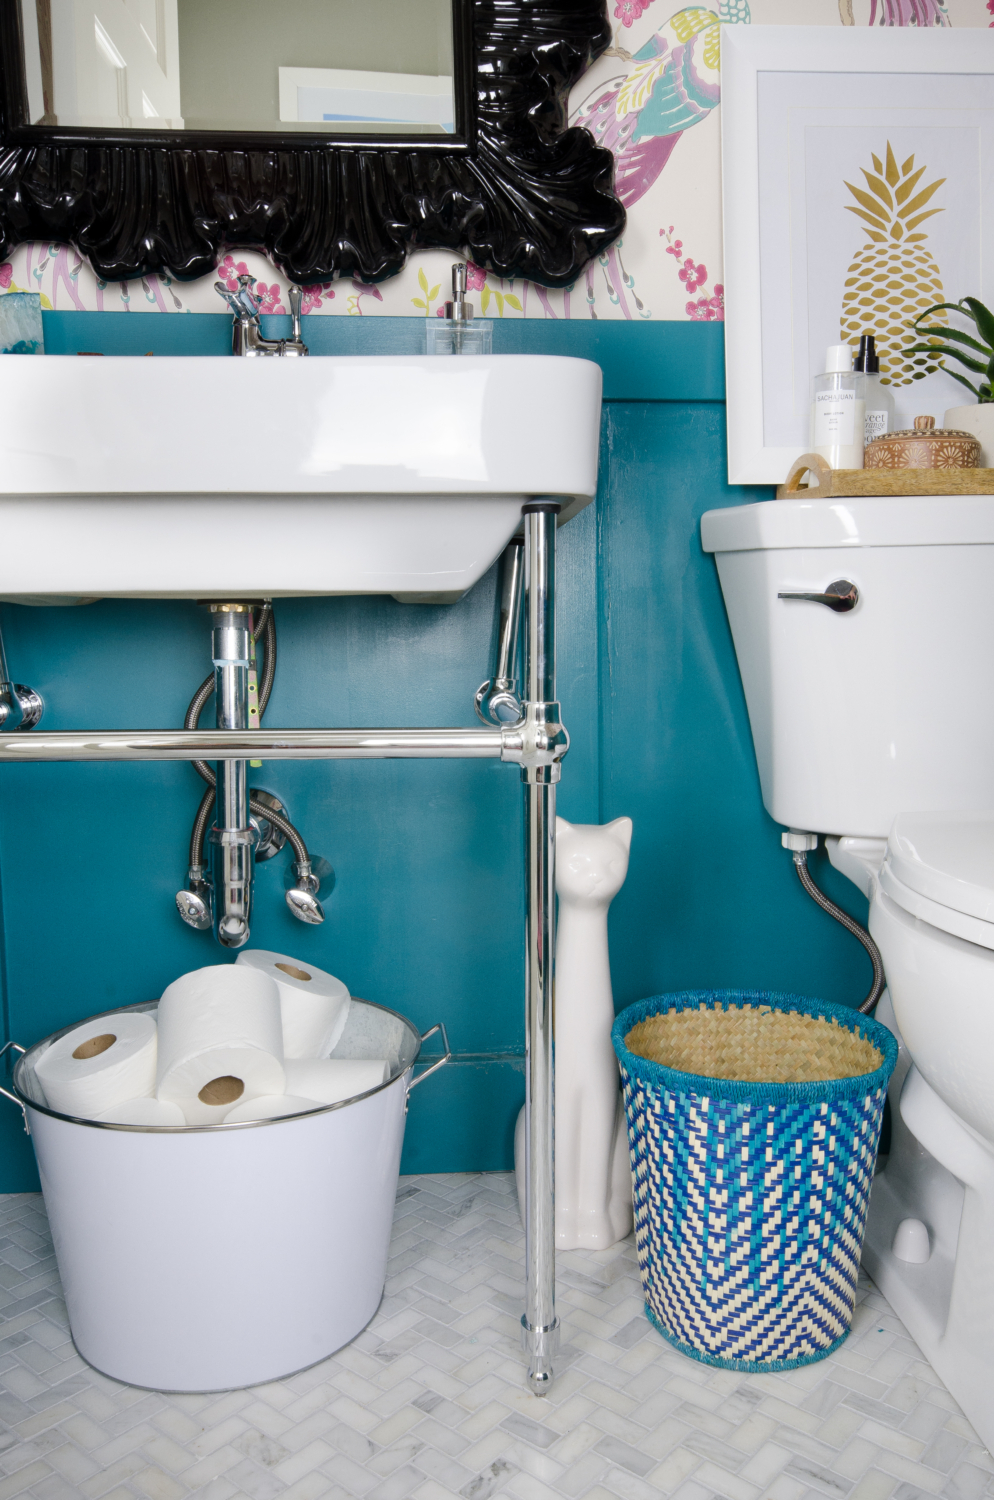 This chrome console sink is perfect for a small powder room!